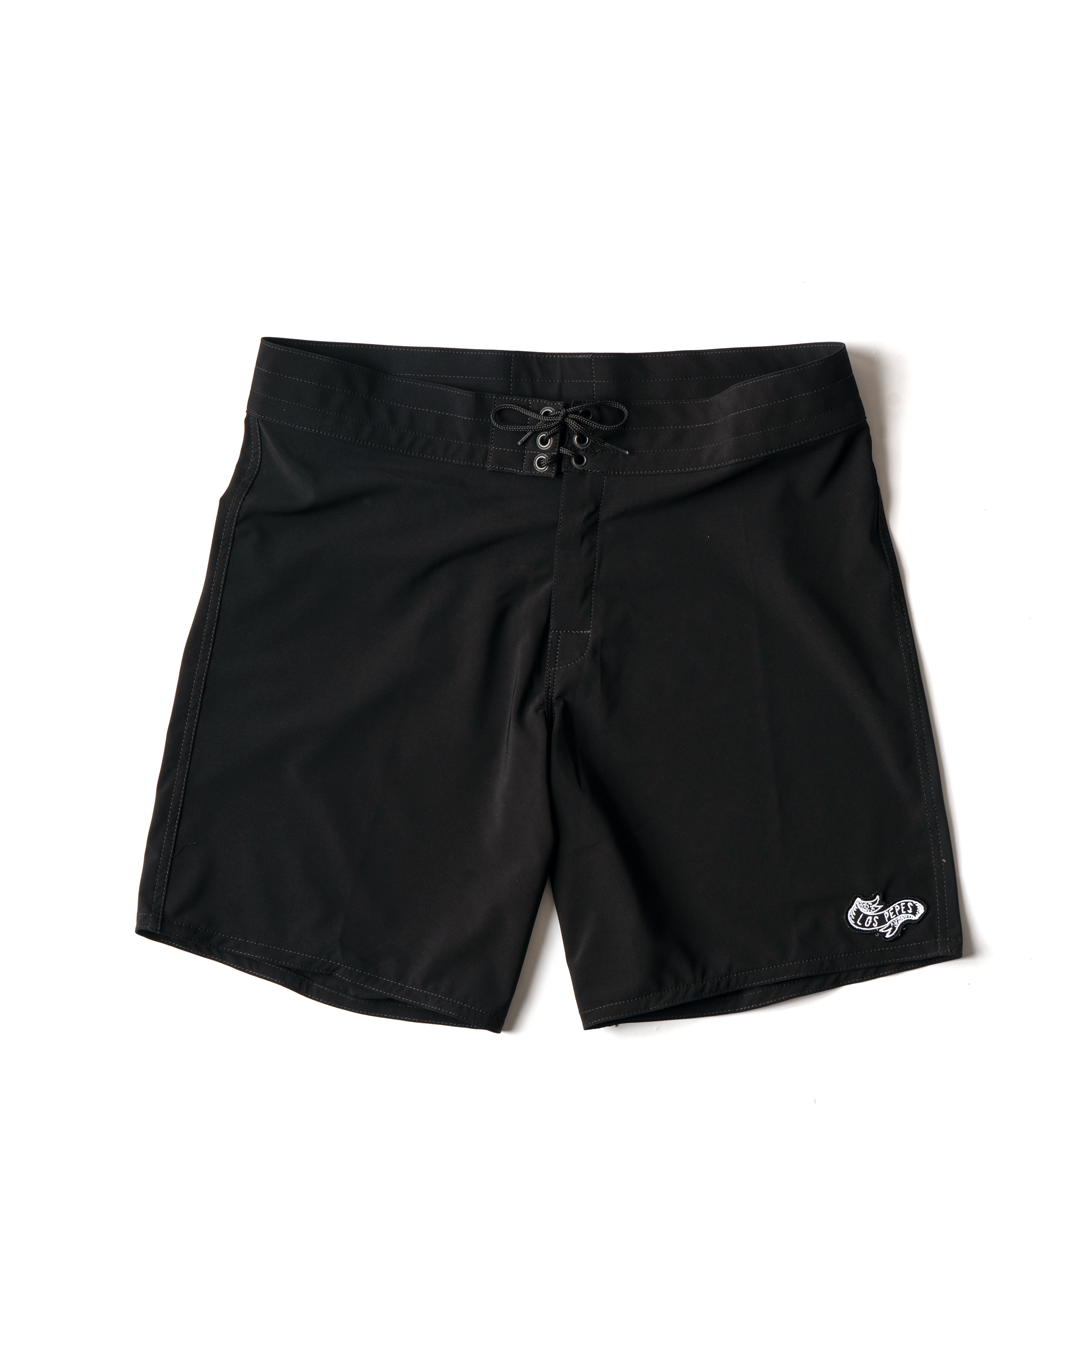 Birdwell x Los Pepes Men's 808 Board Short - Black